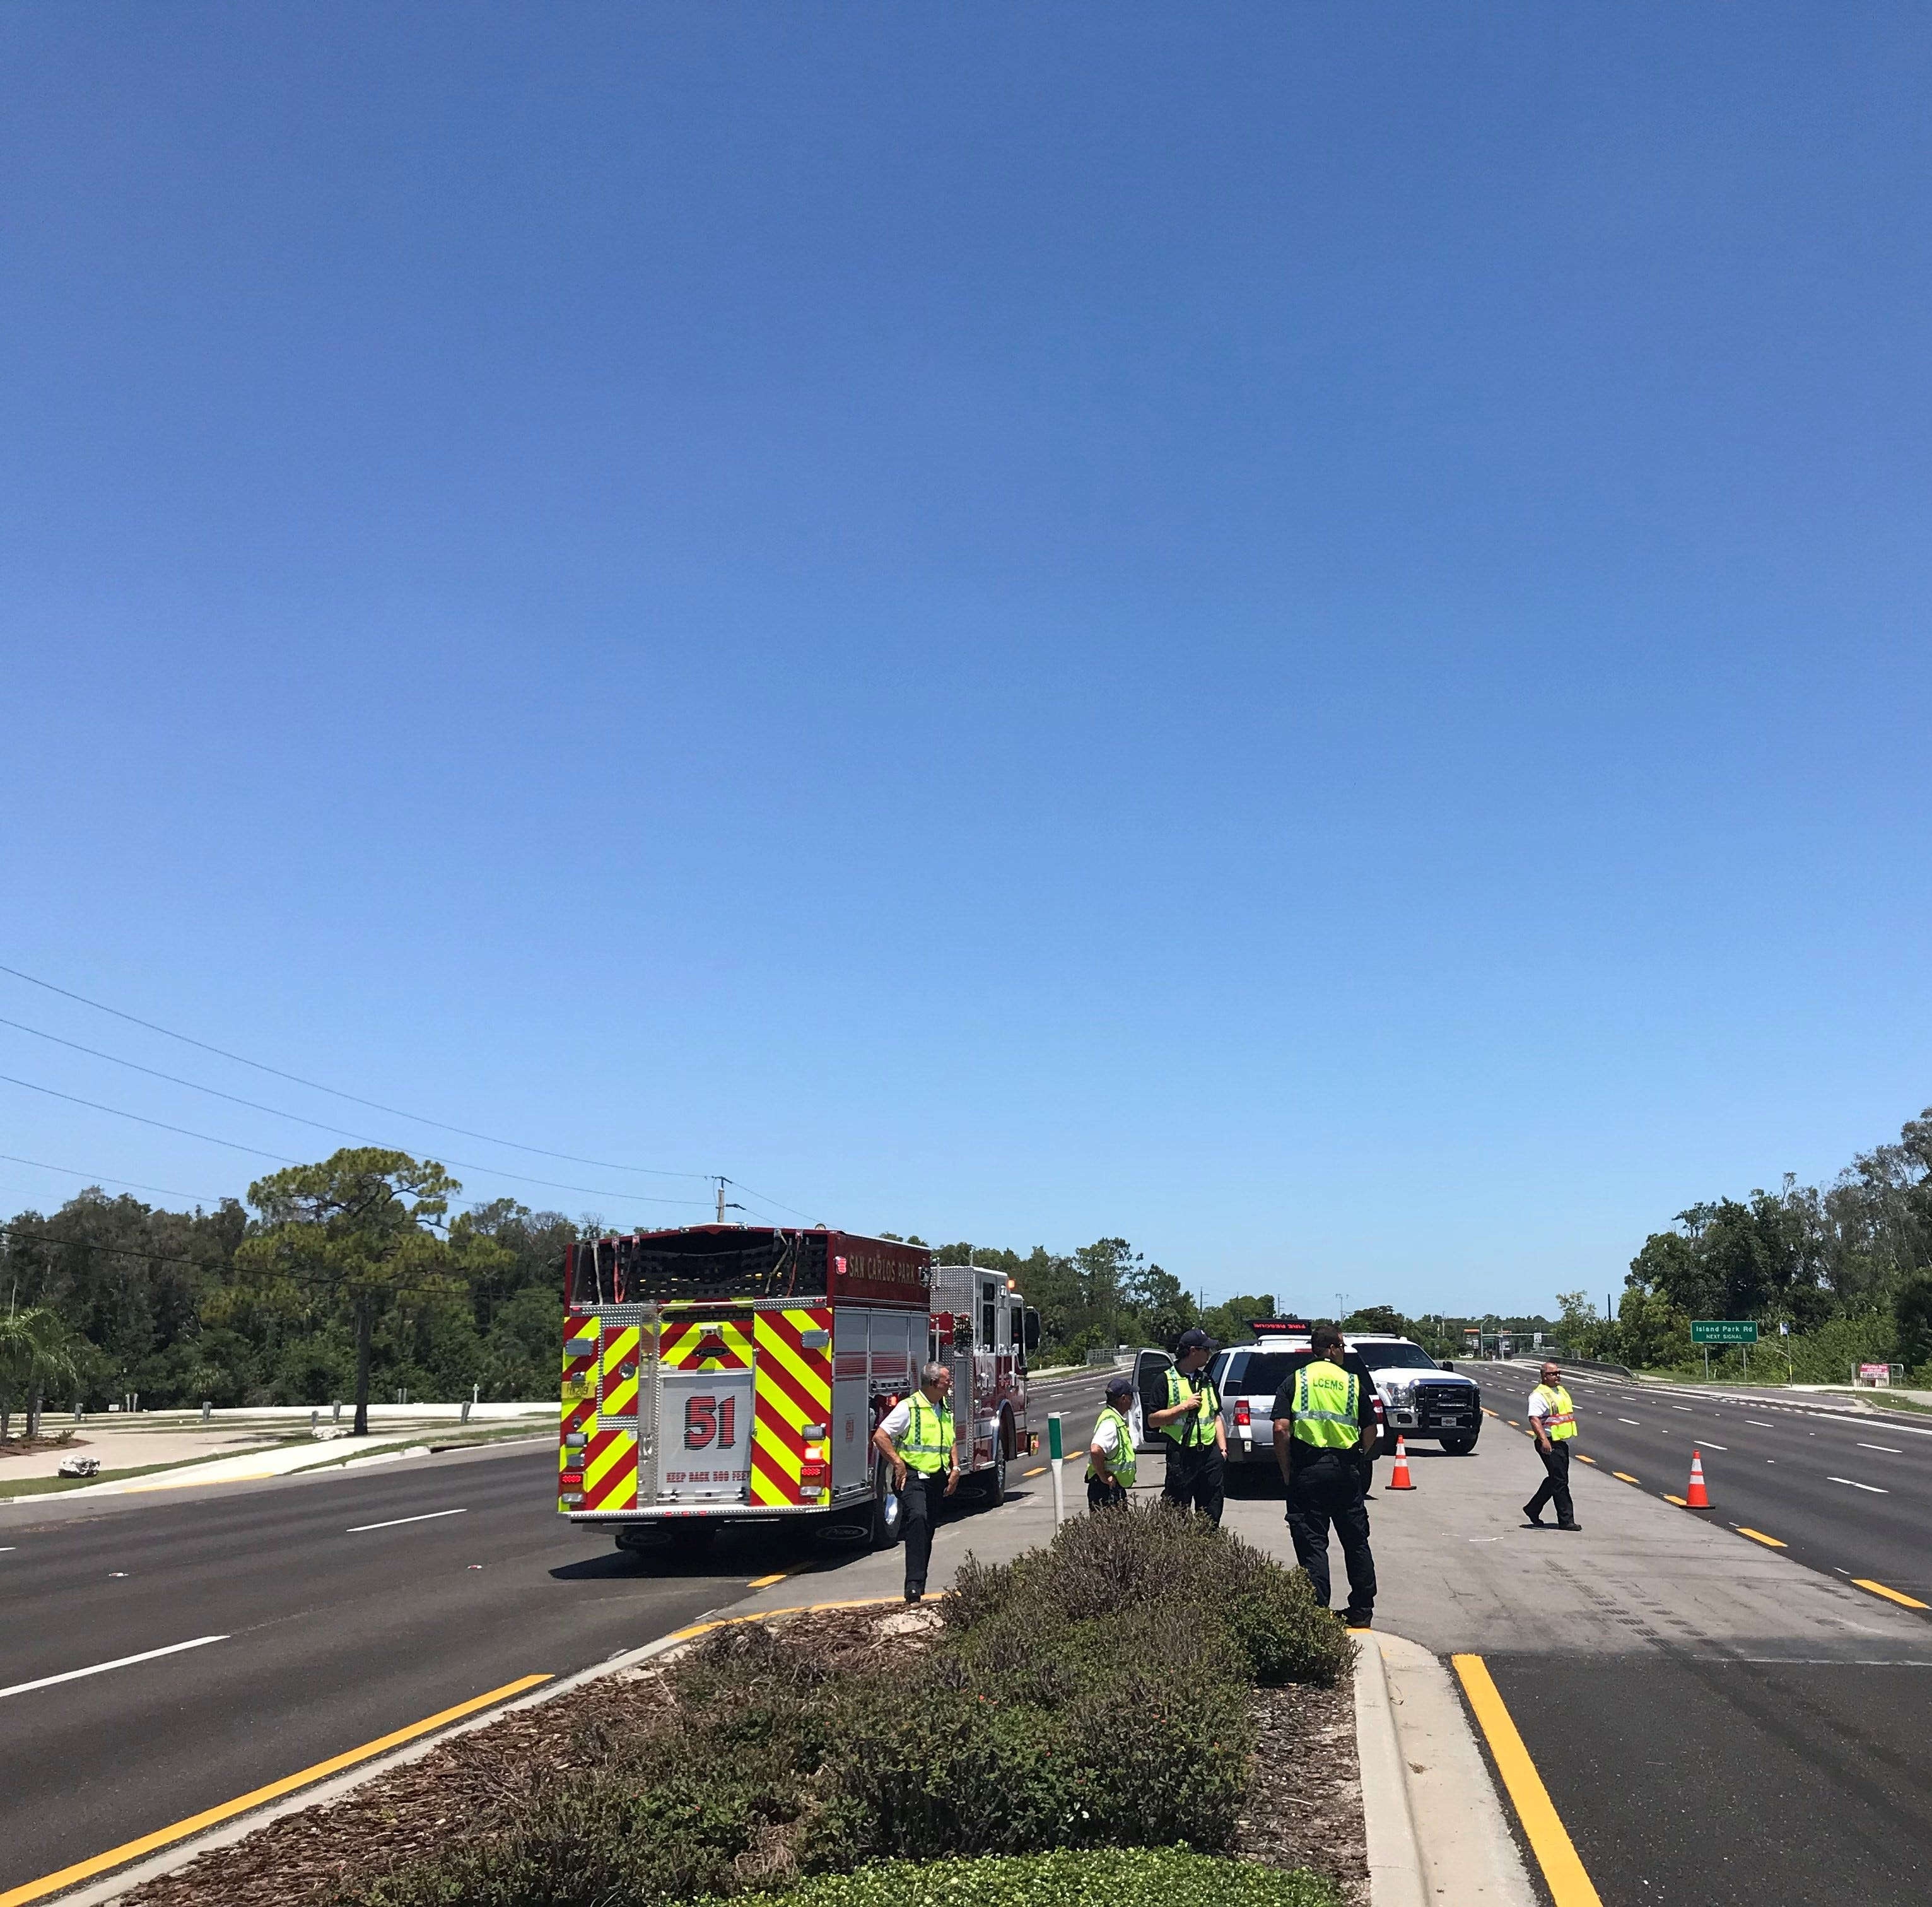 Gas leak causing road closures on U.S. 41 from Briarcliff Road to Alico Road in south Fort Myers